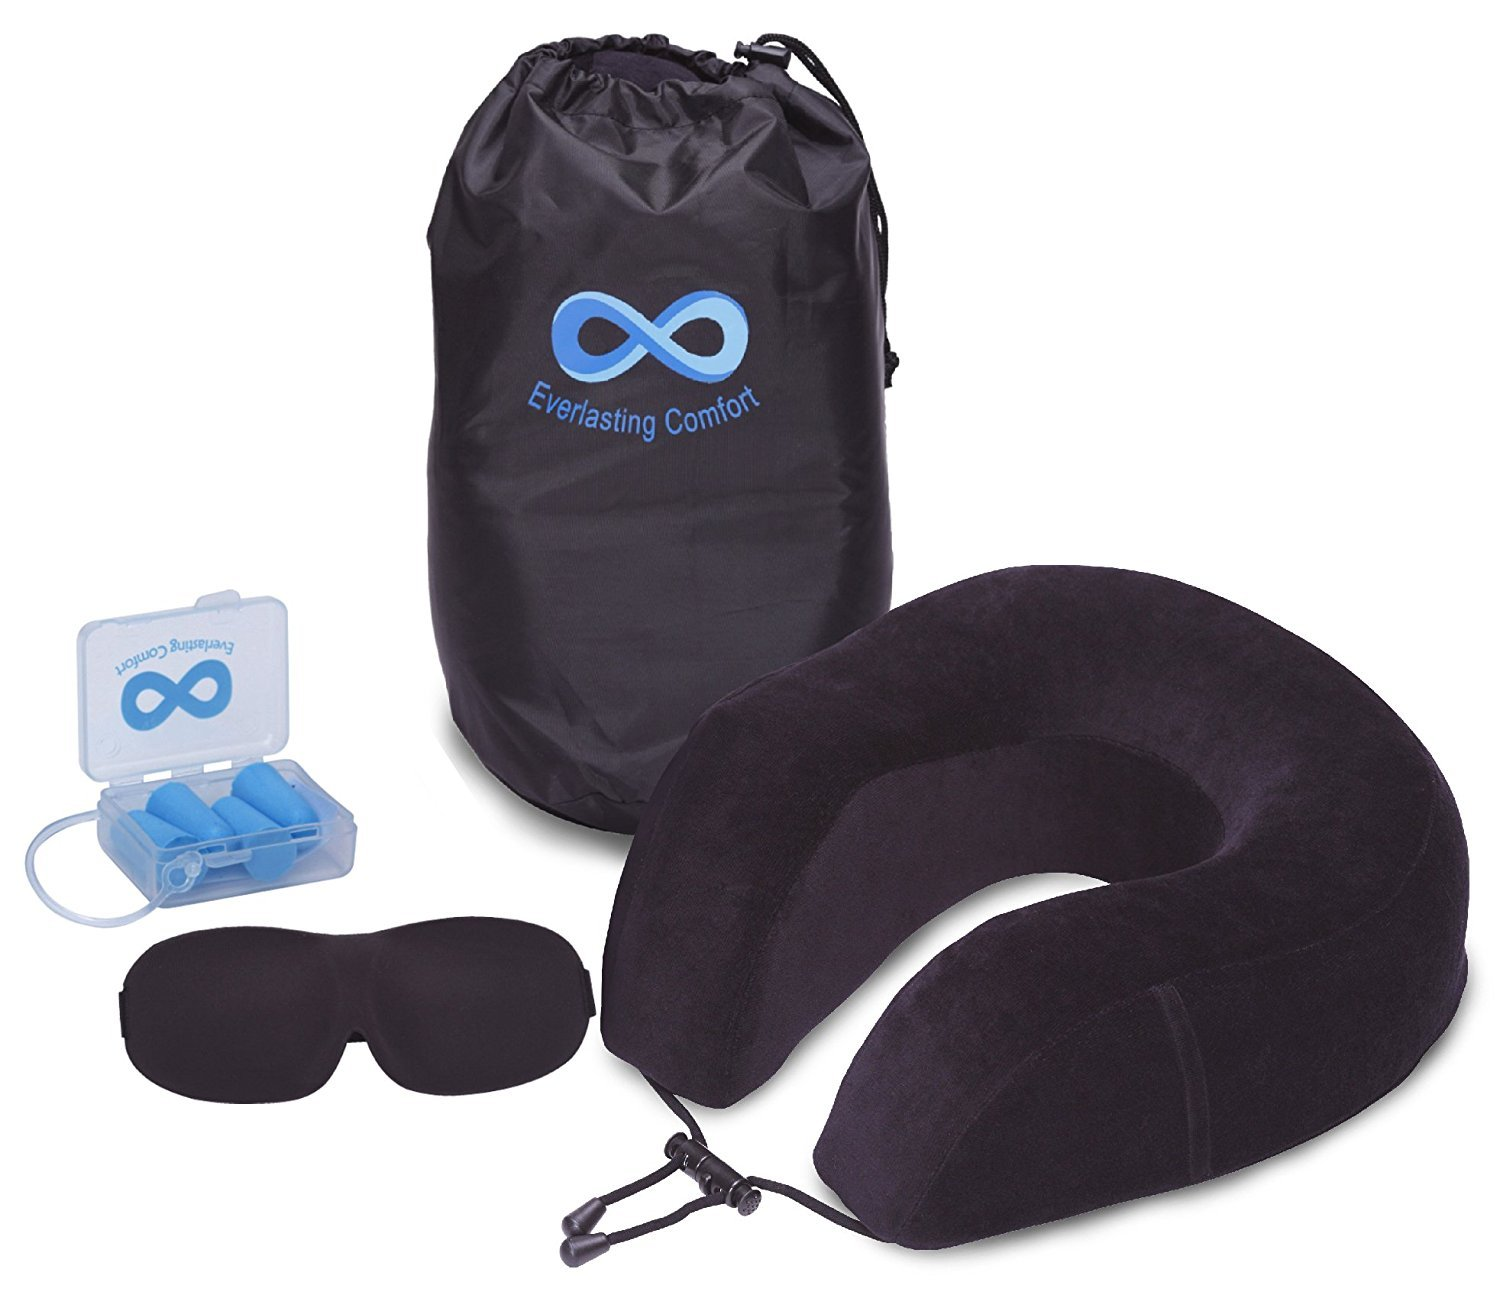 Memory Foam Neck Pillow With Cover, Sleep Mask and Earplugs